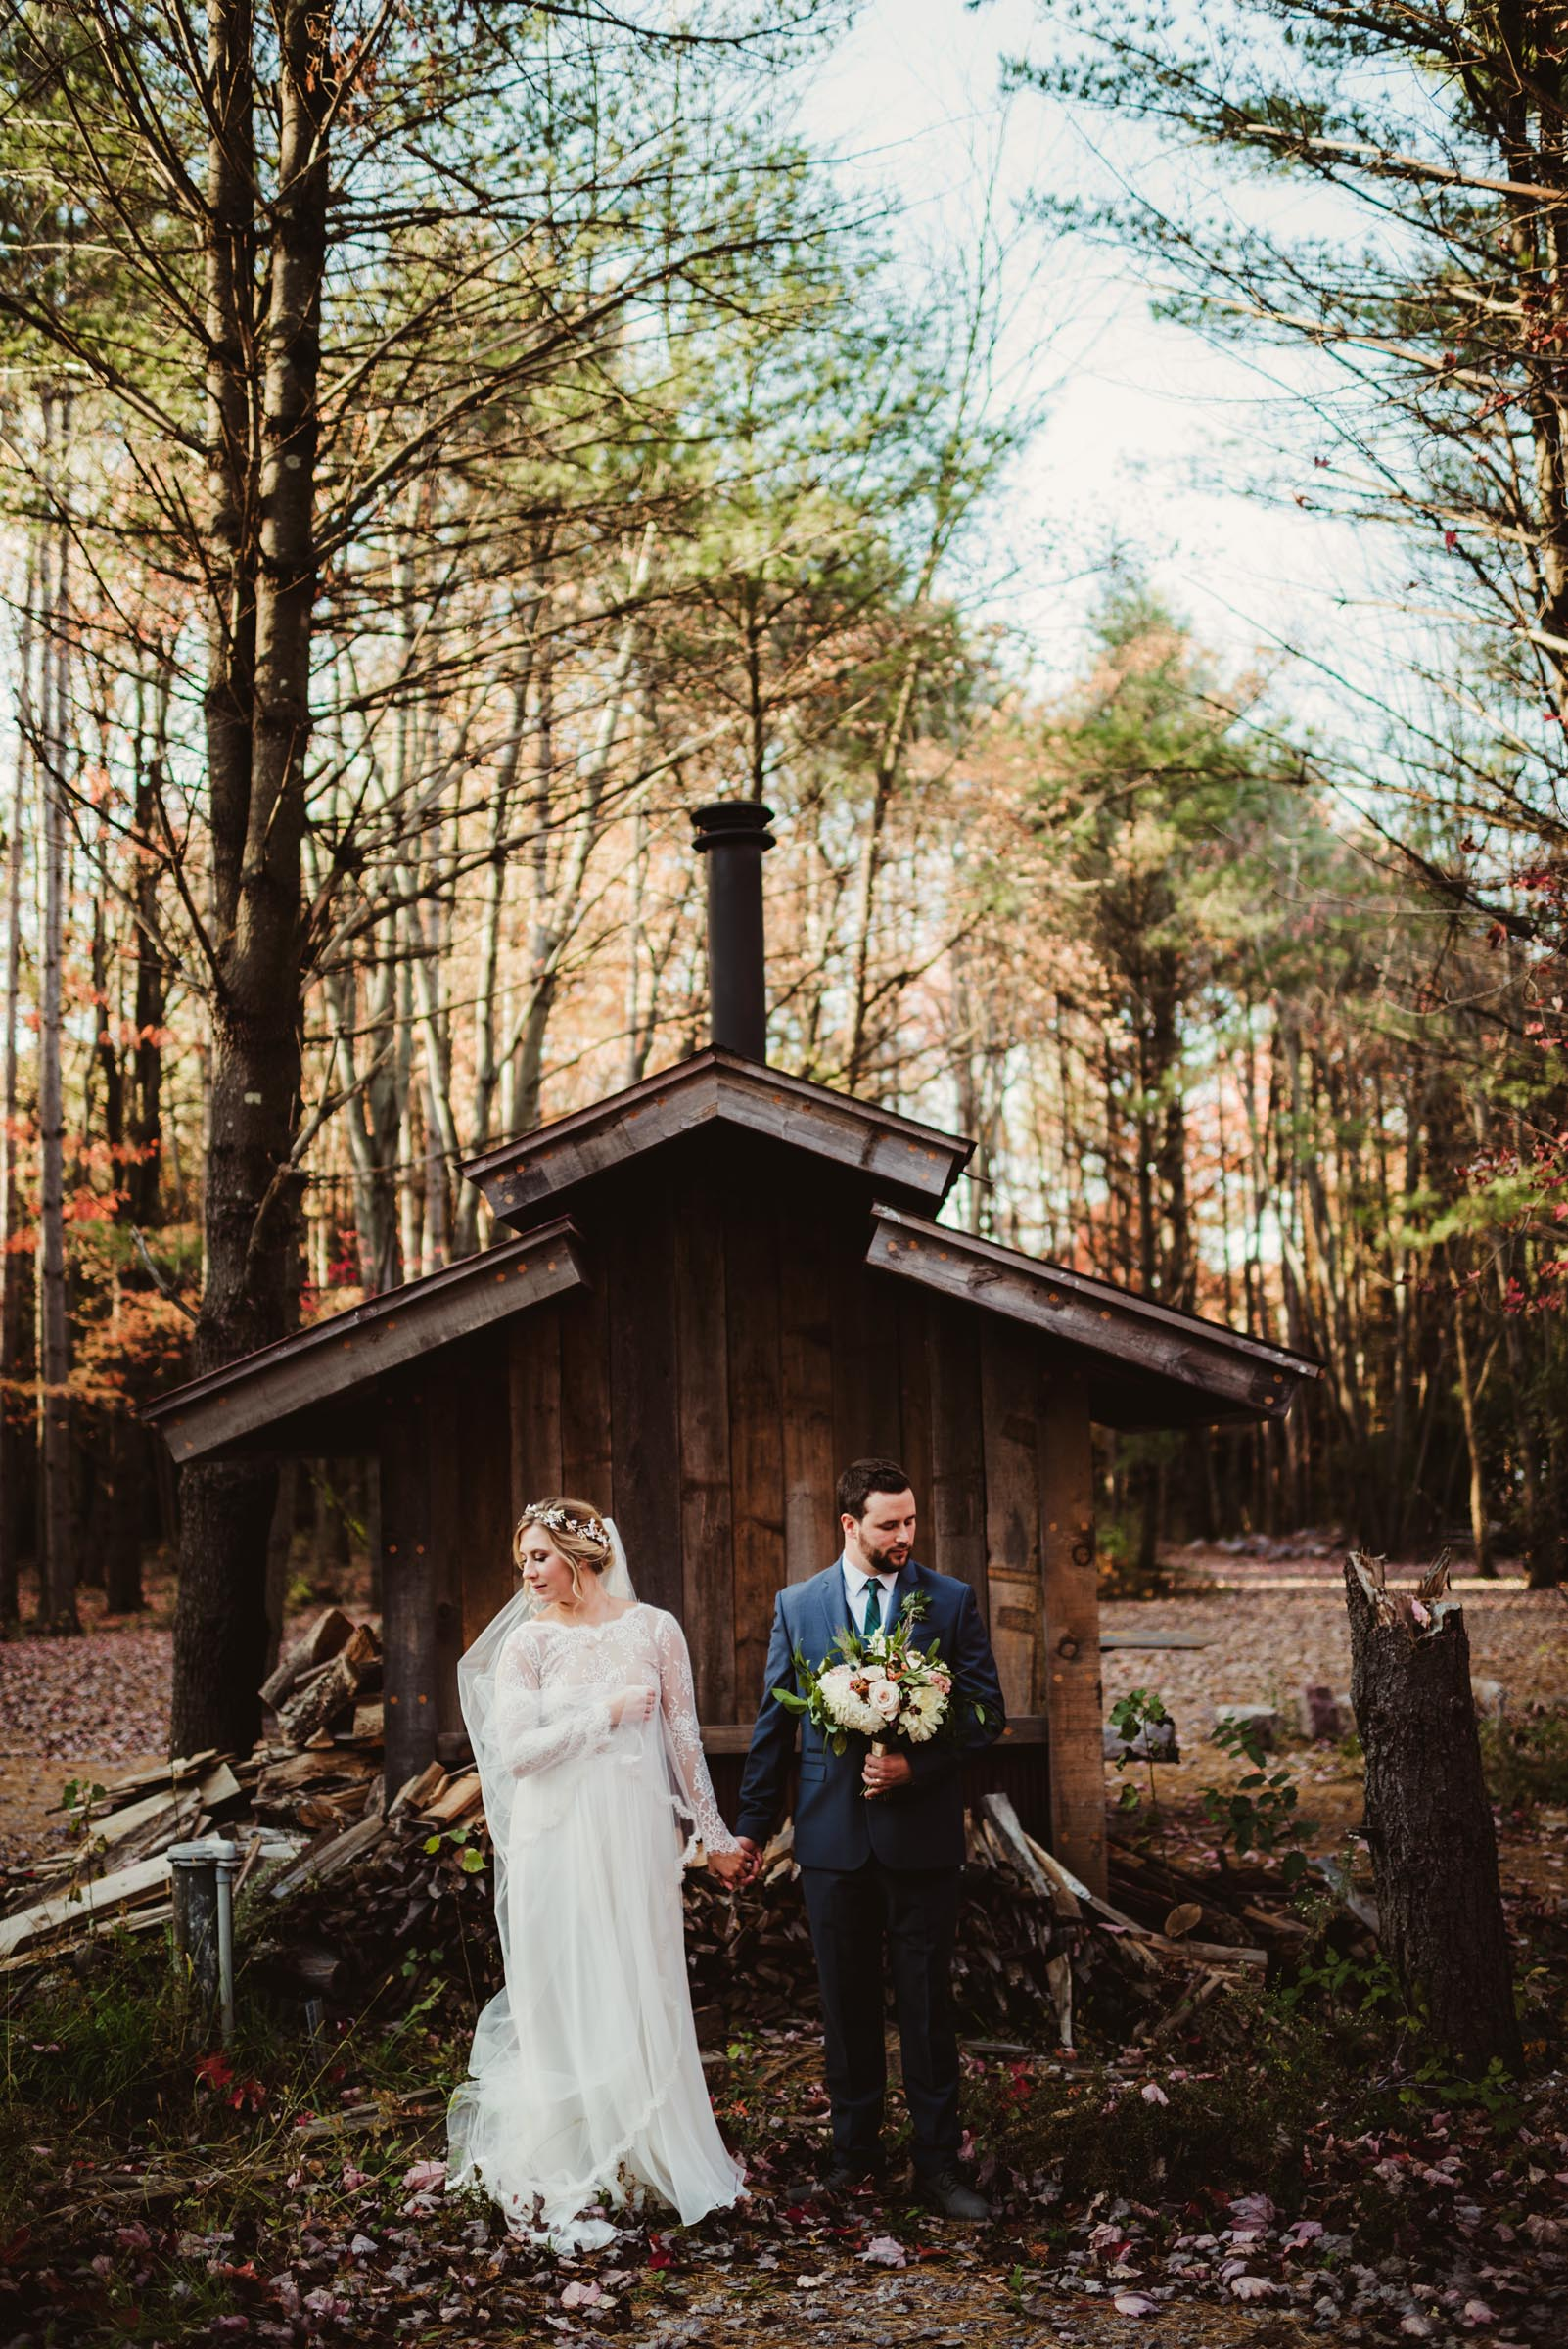 couple in a rustic outdoor setting in fall